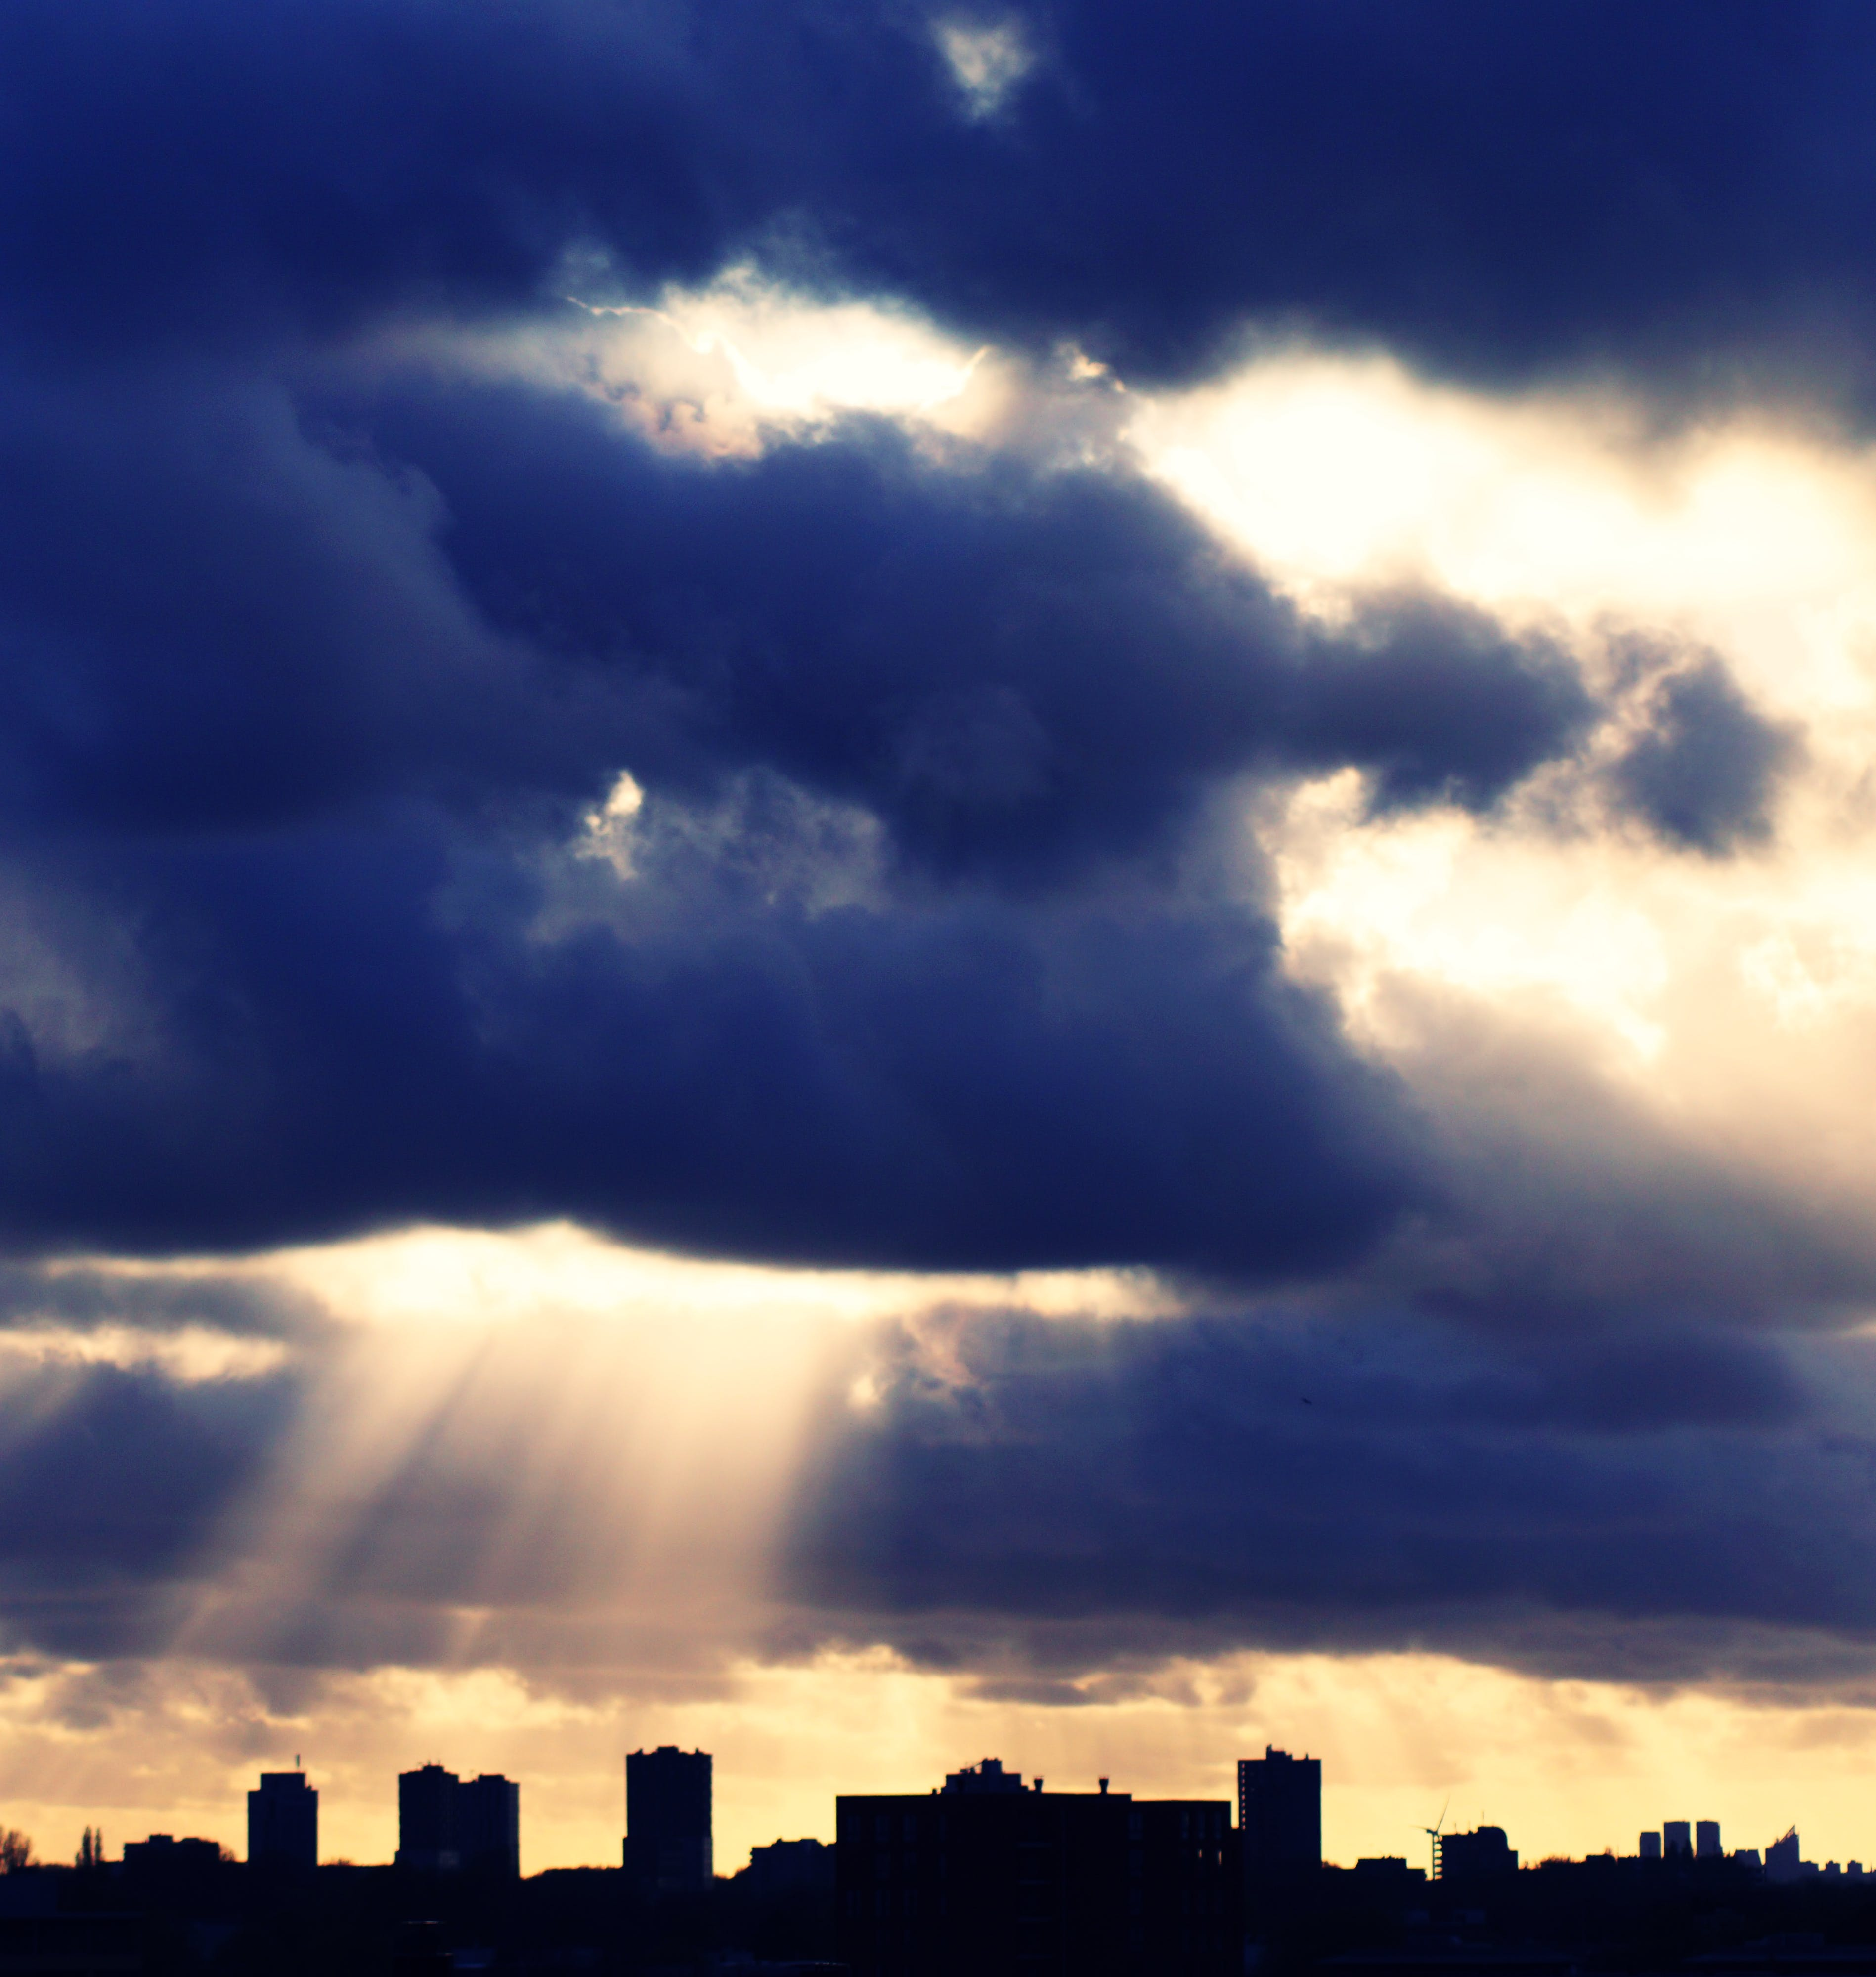 Silhouette of Building Under Cloudy Sky